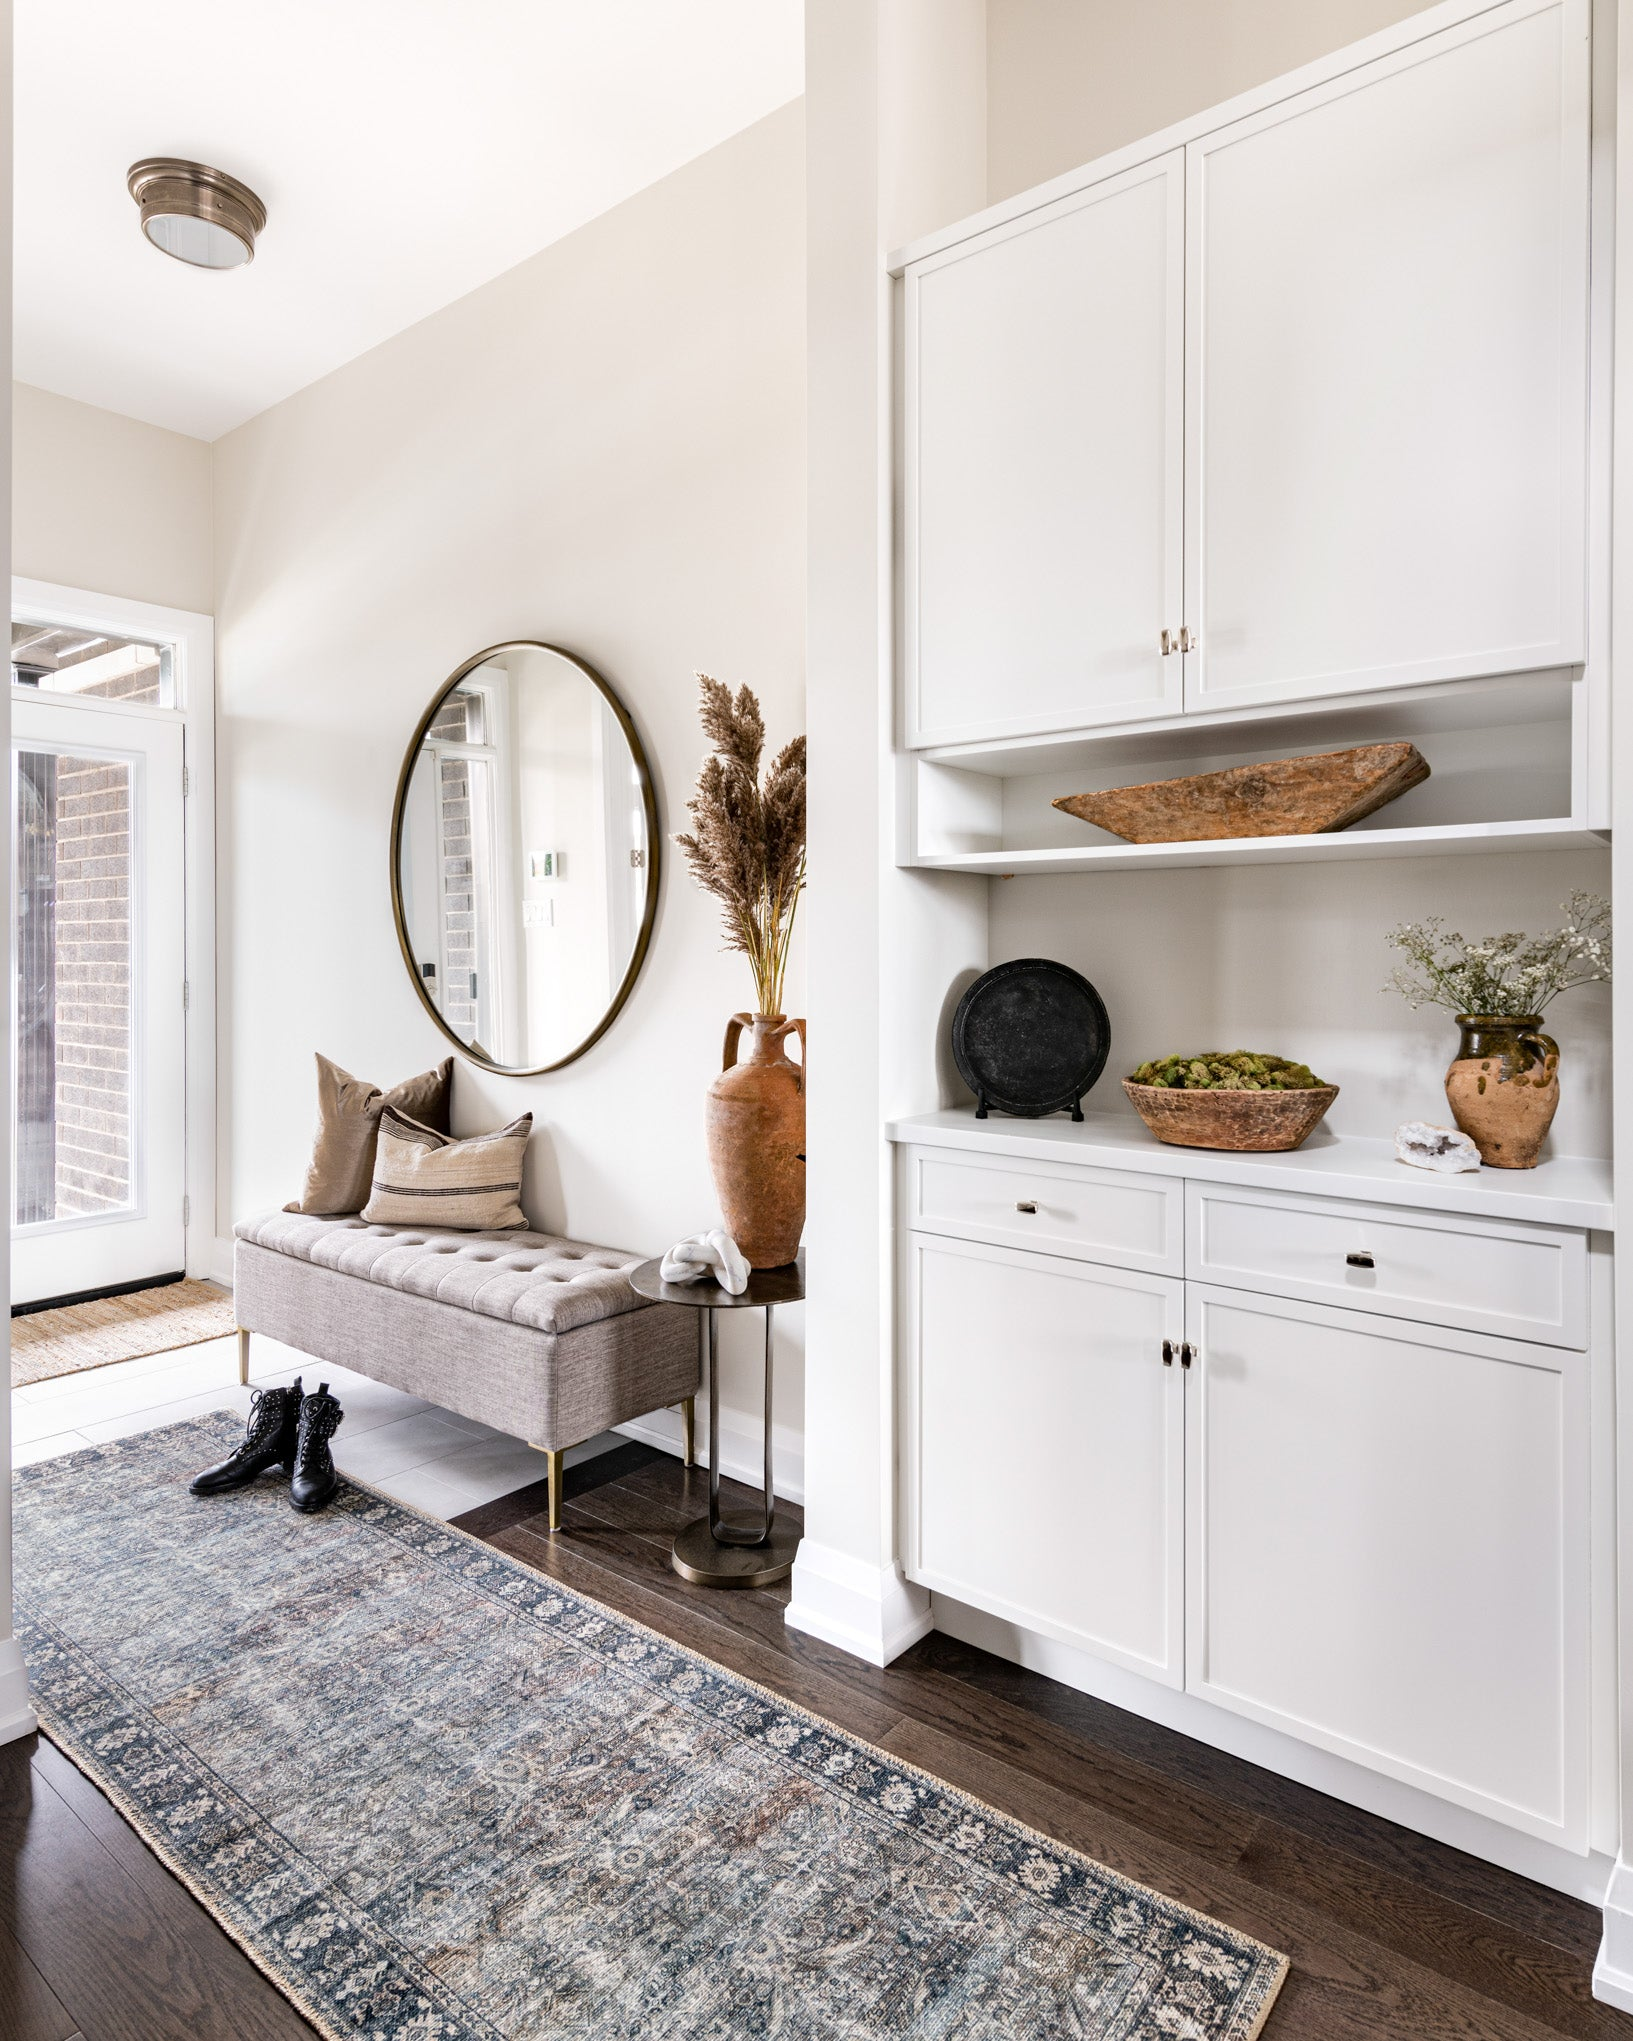 Entryway with runner and storage.